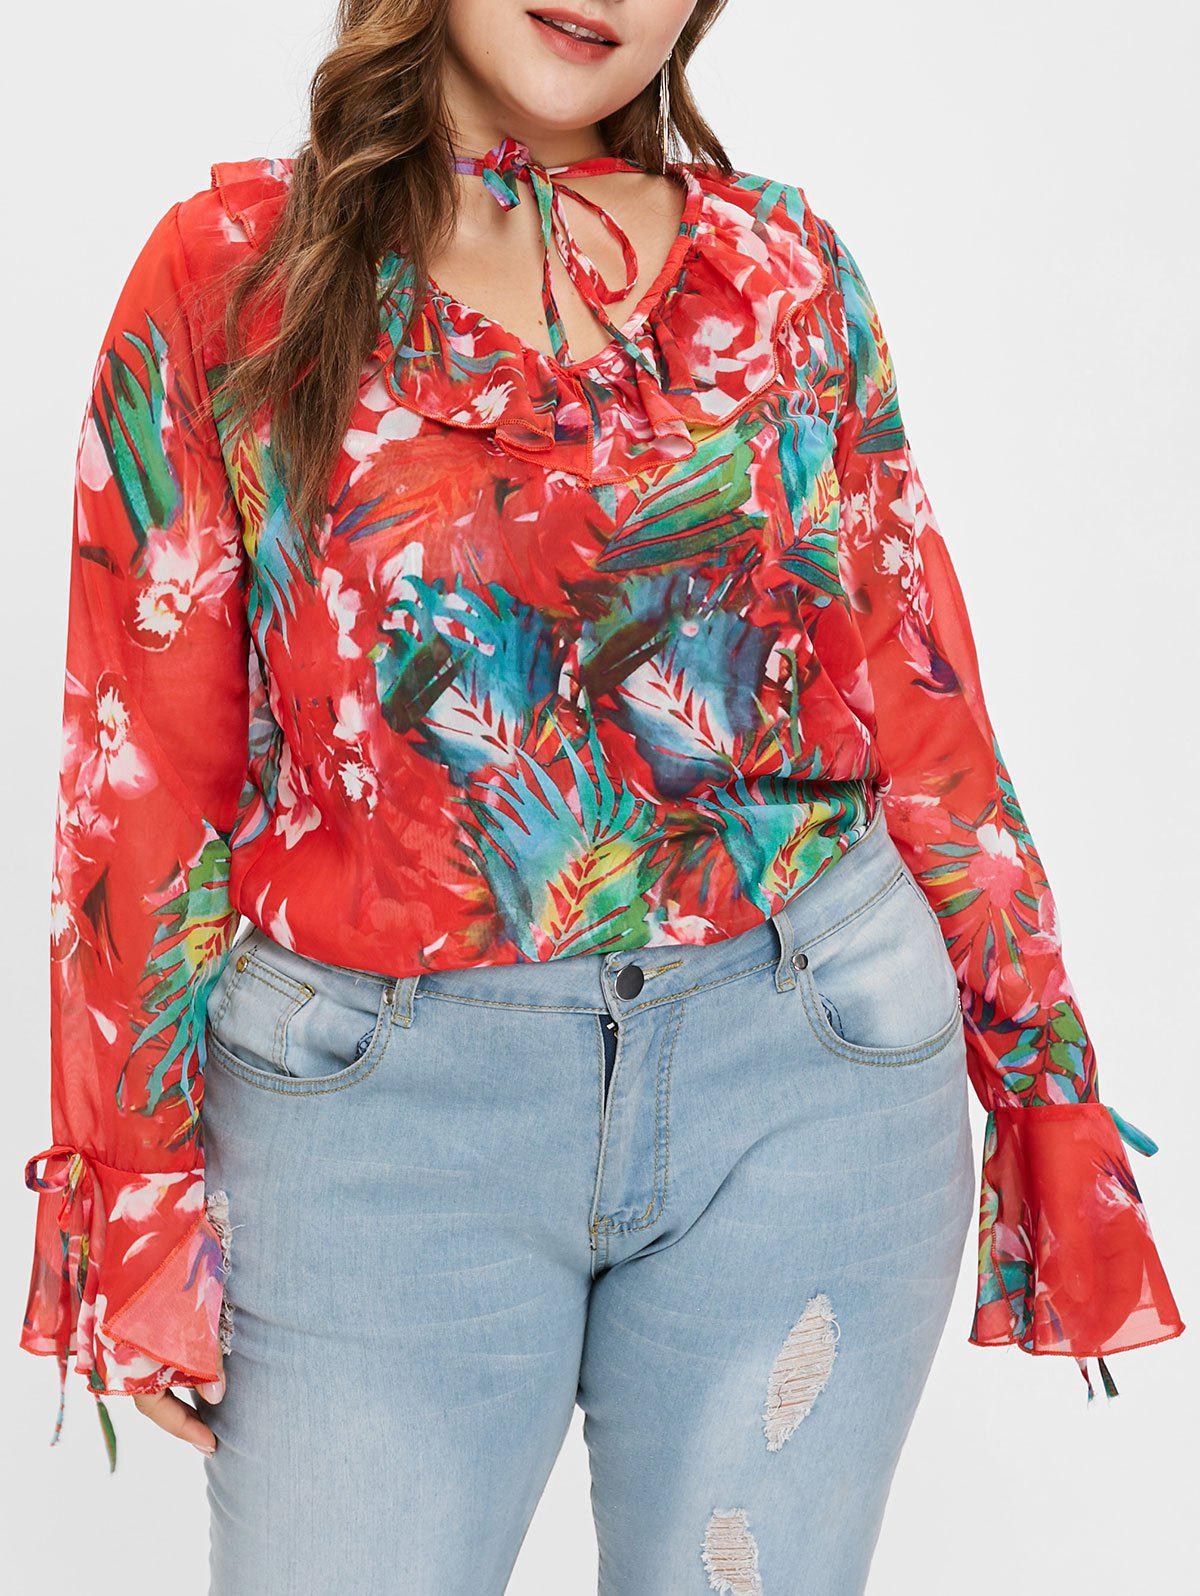 Store Flare Sleeve Floral Print Plus Size Blouse